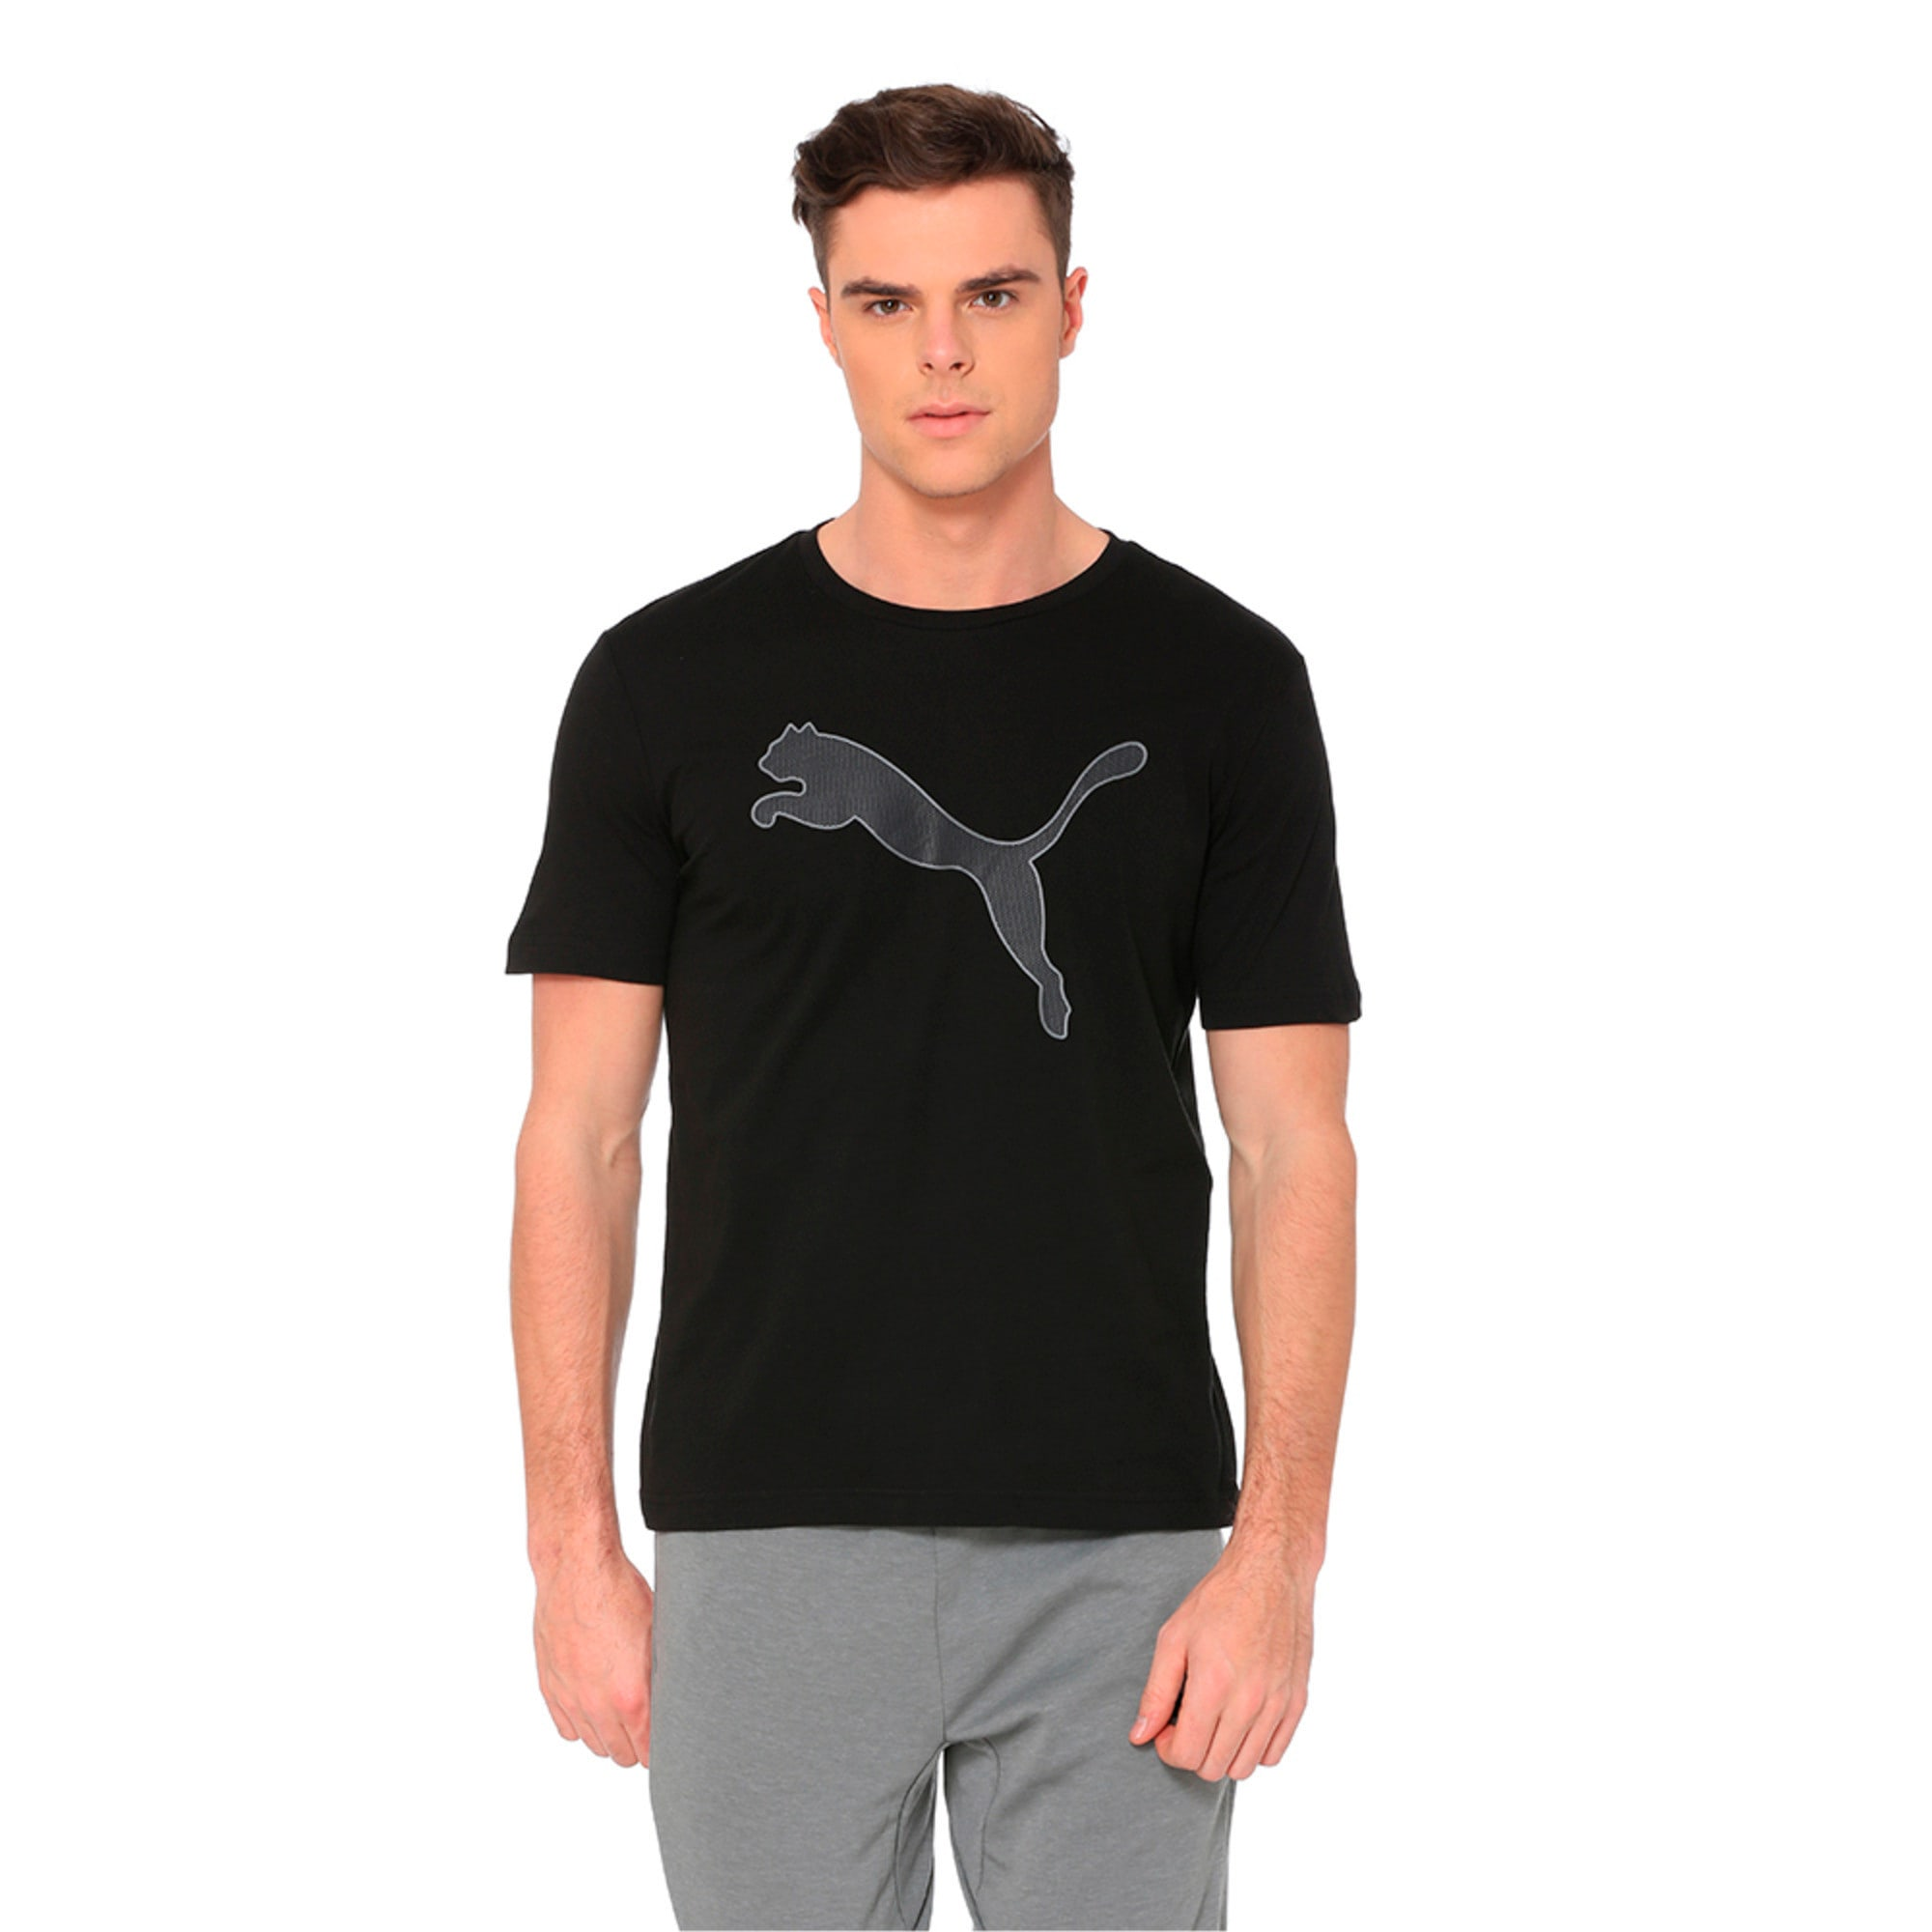 Active P48 Modern Sports Men's Tee, Cotton Black, large-IND